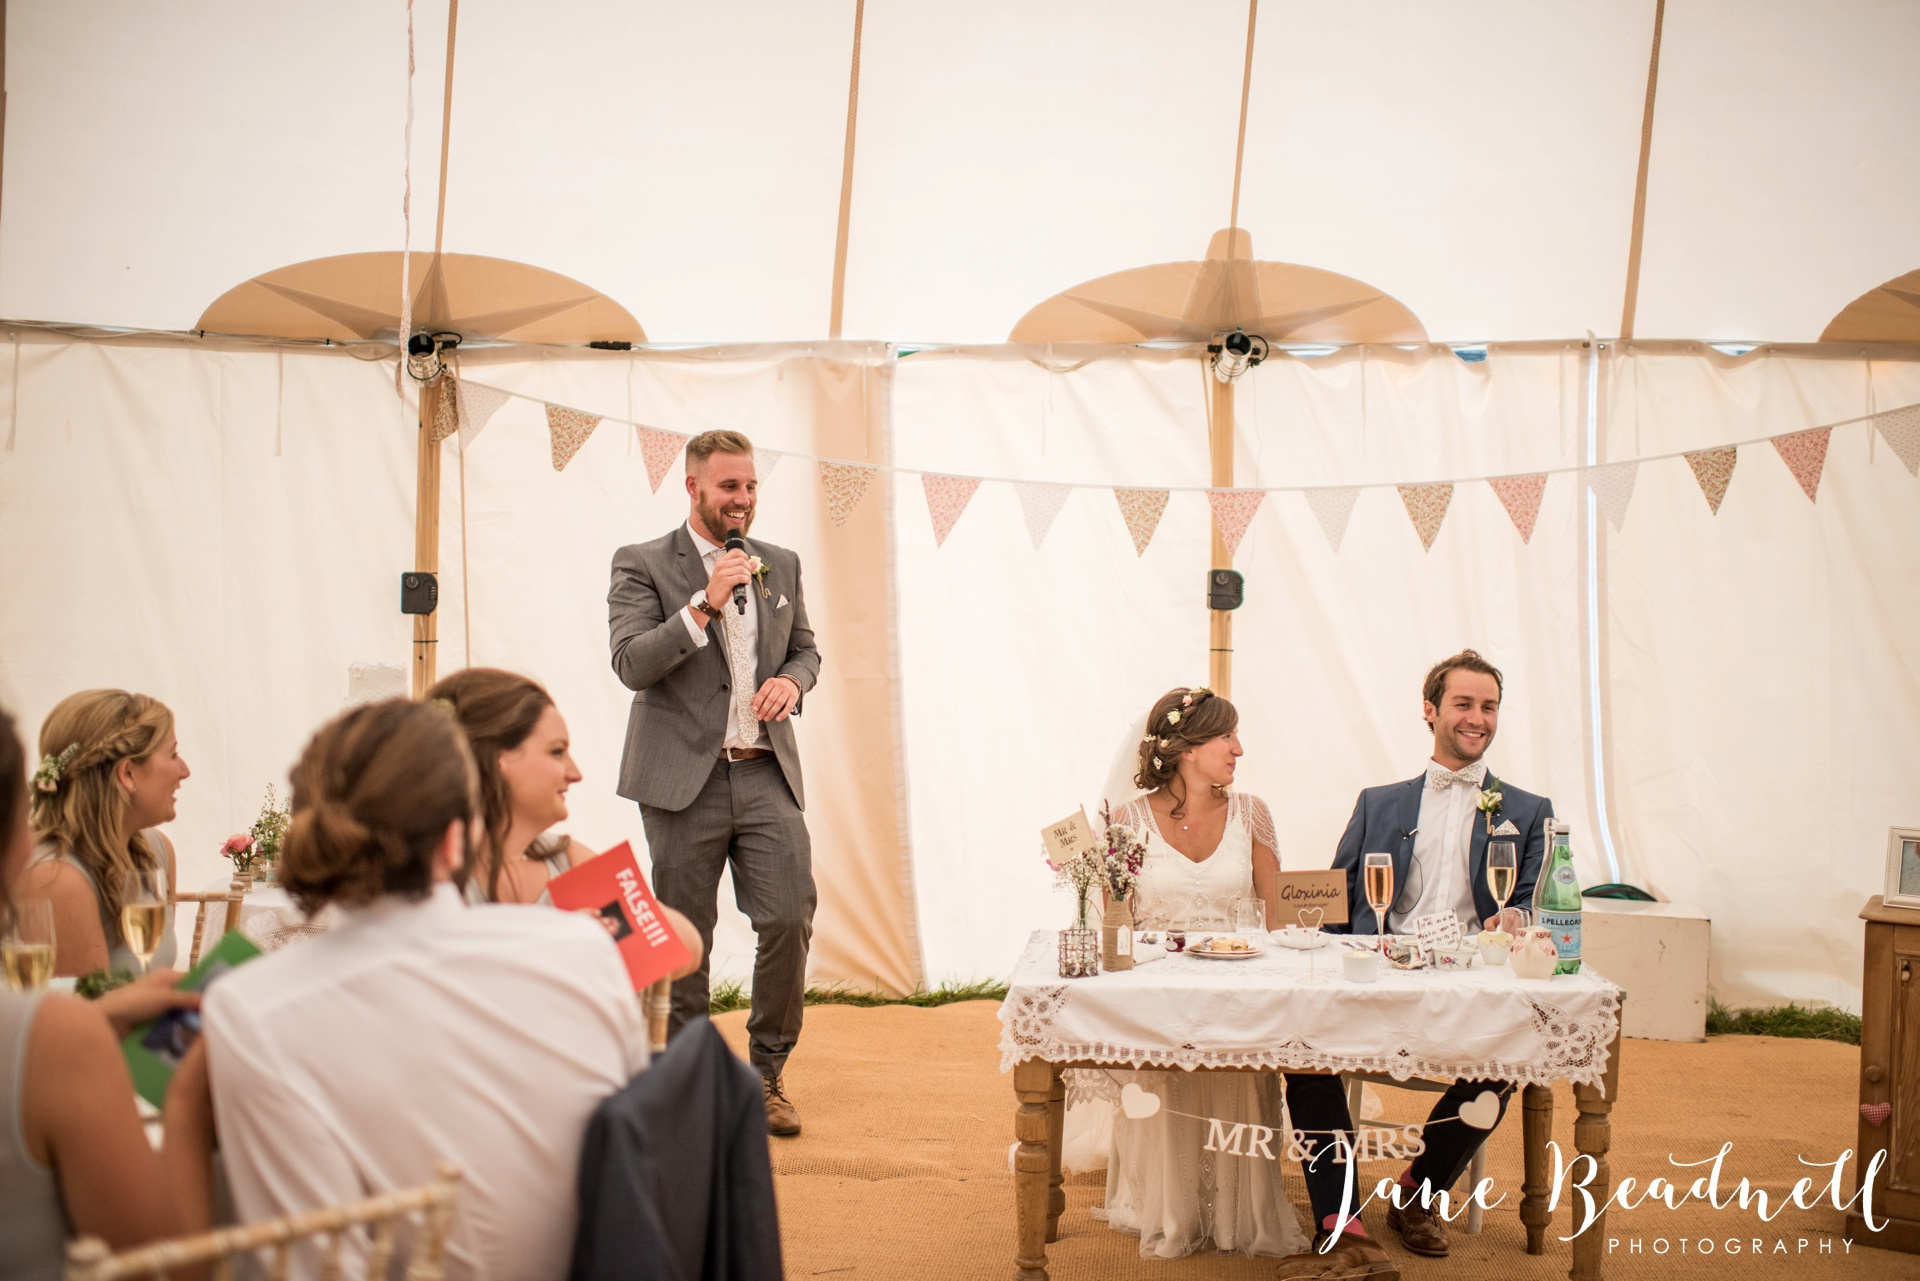 Jane Beadnell fine art wedding photographer Leeds_0113